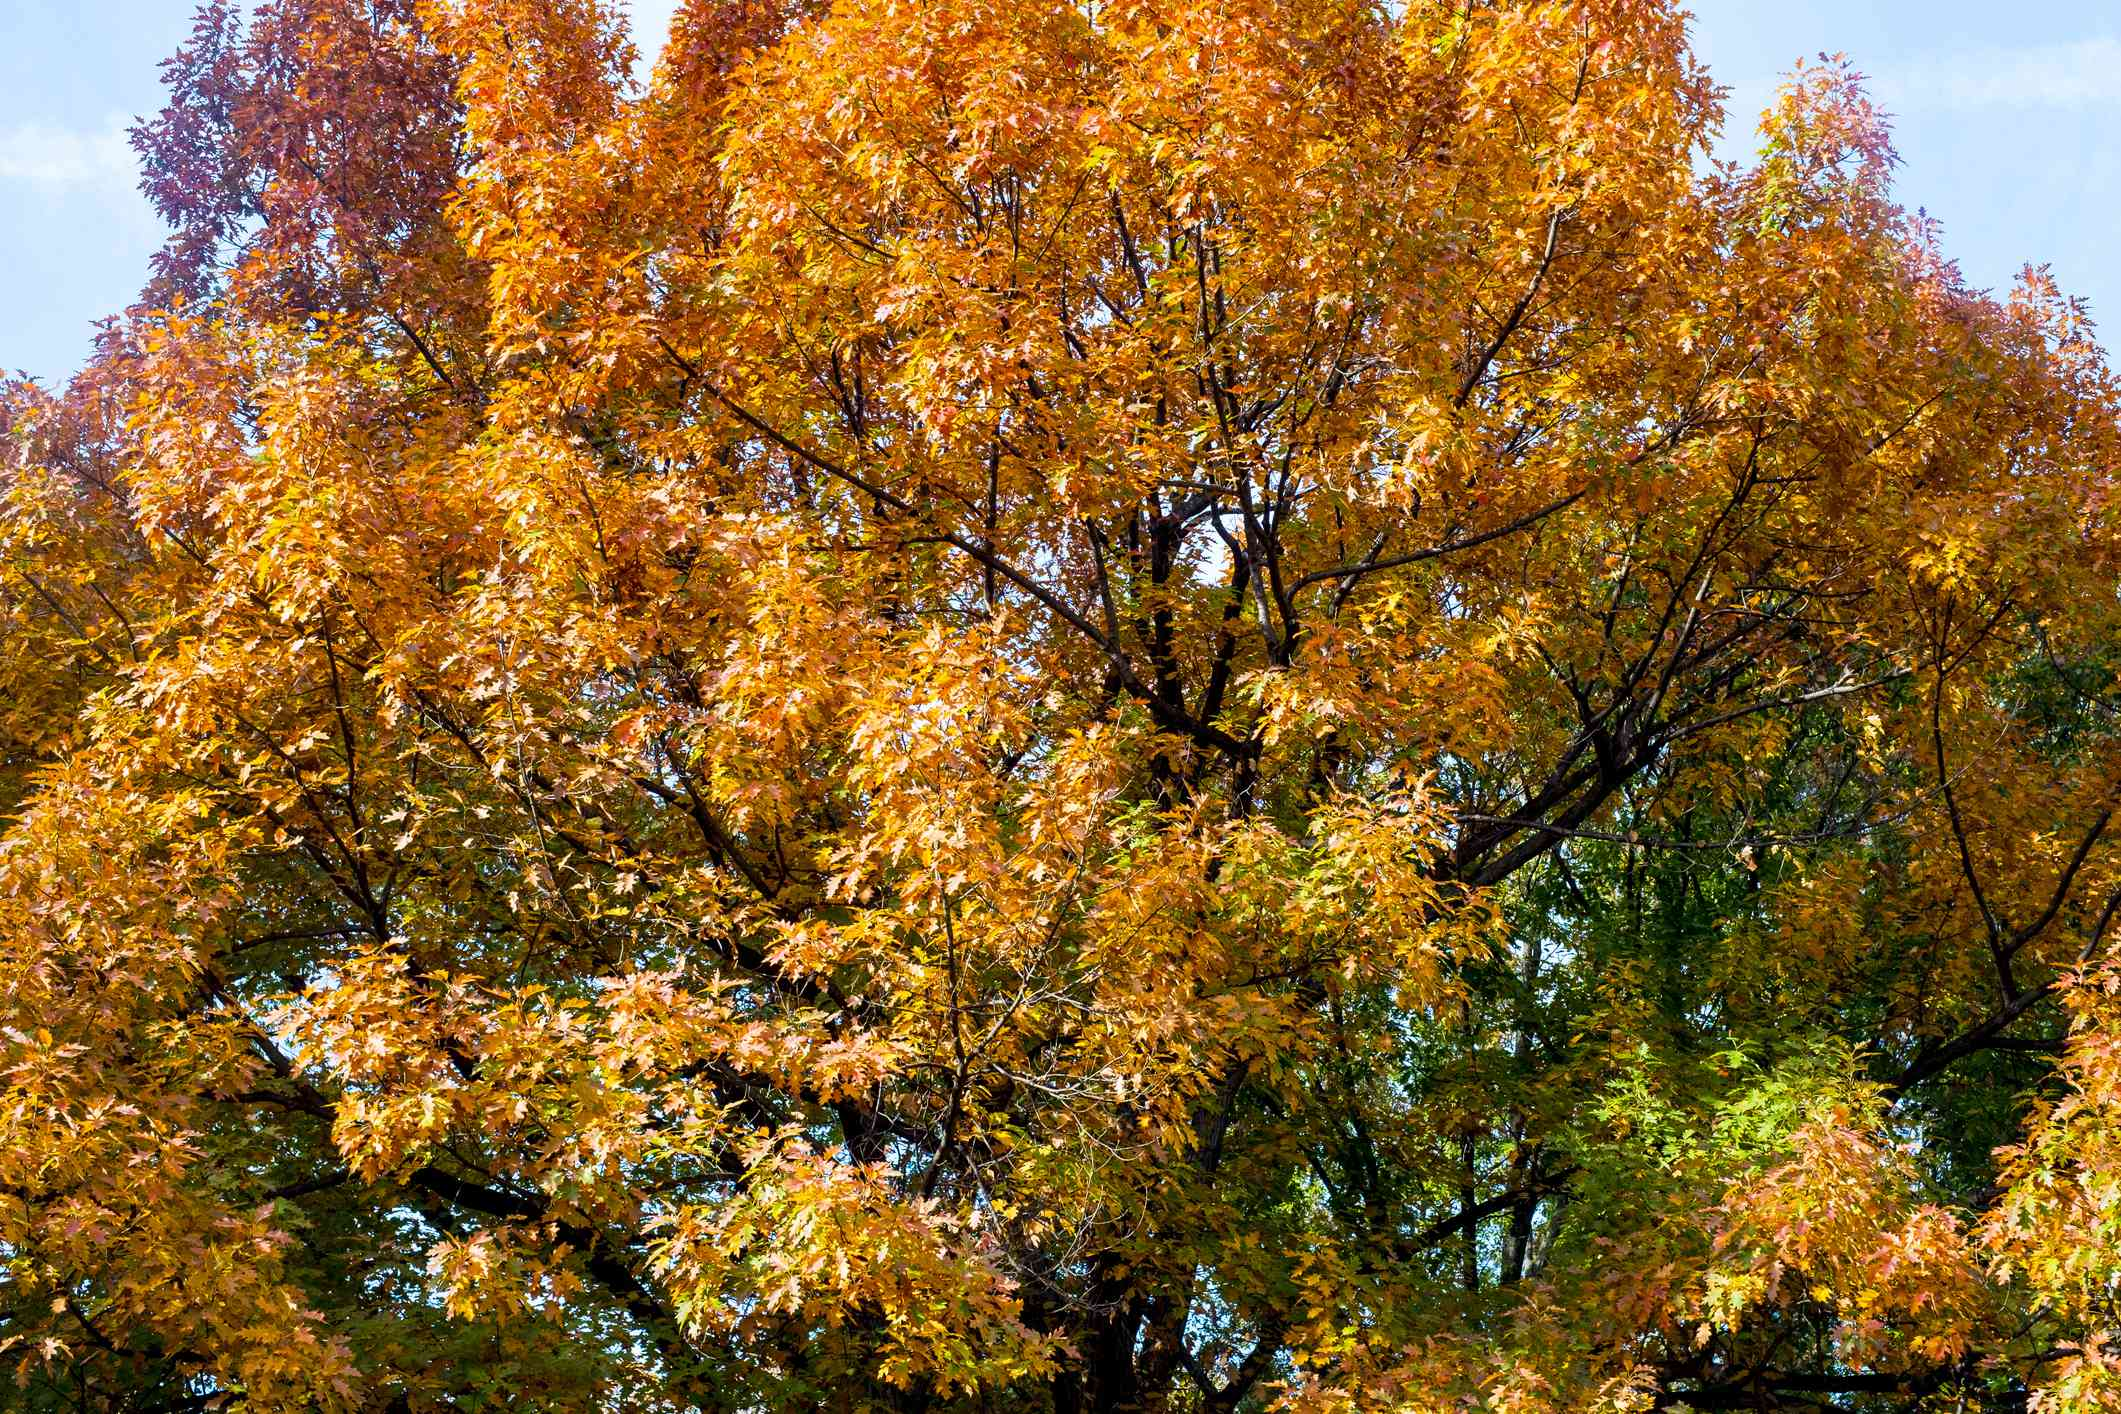 Northern red oak in fall orange and red colors